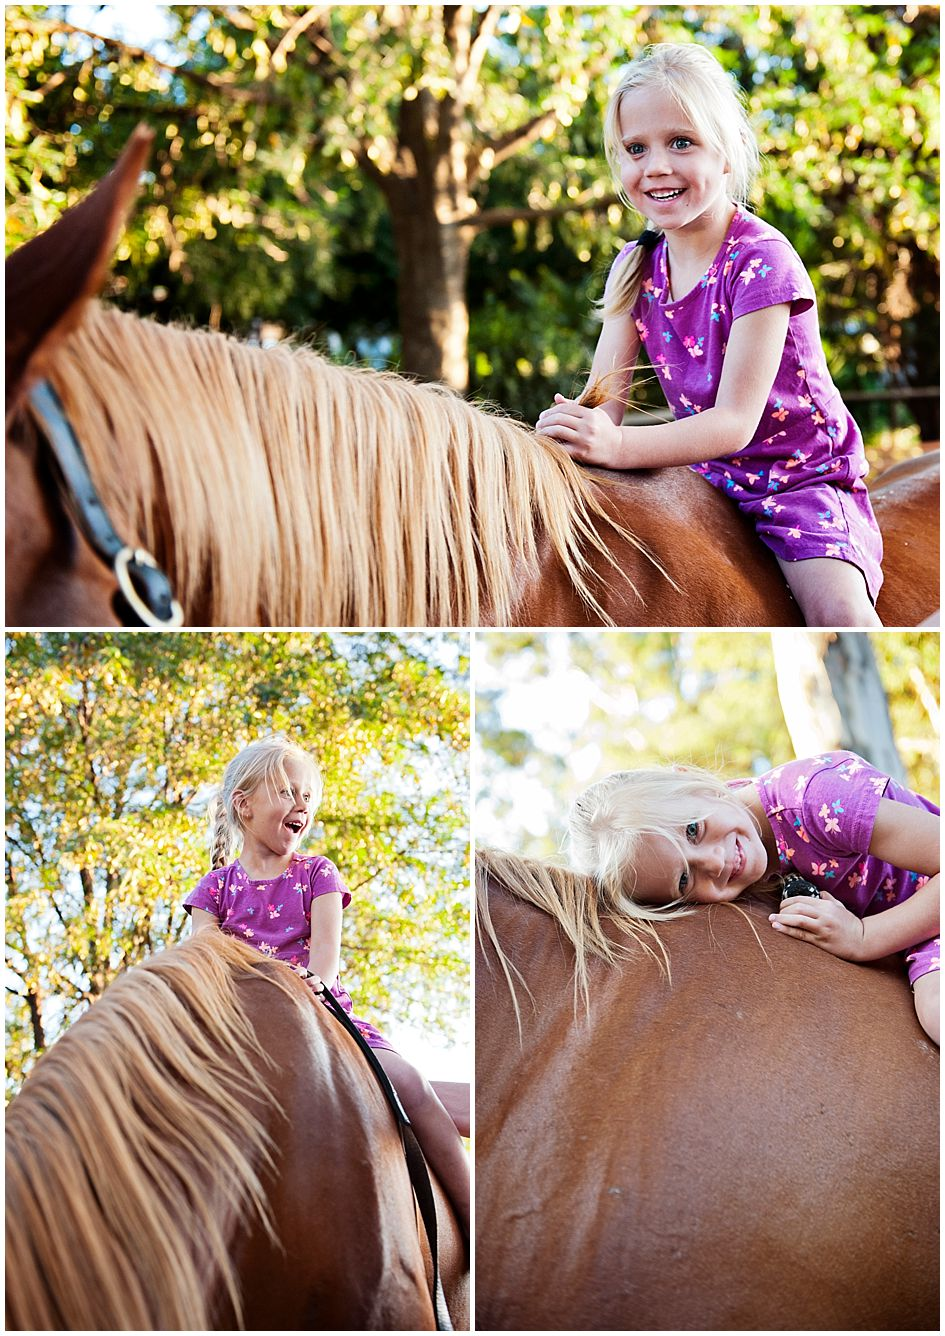 horseback-little-girl-photoshoot.jpg